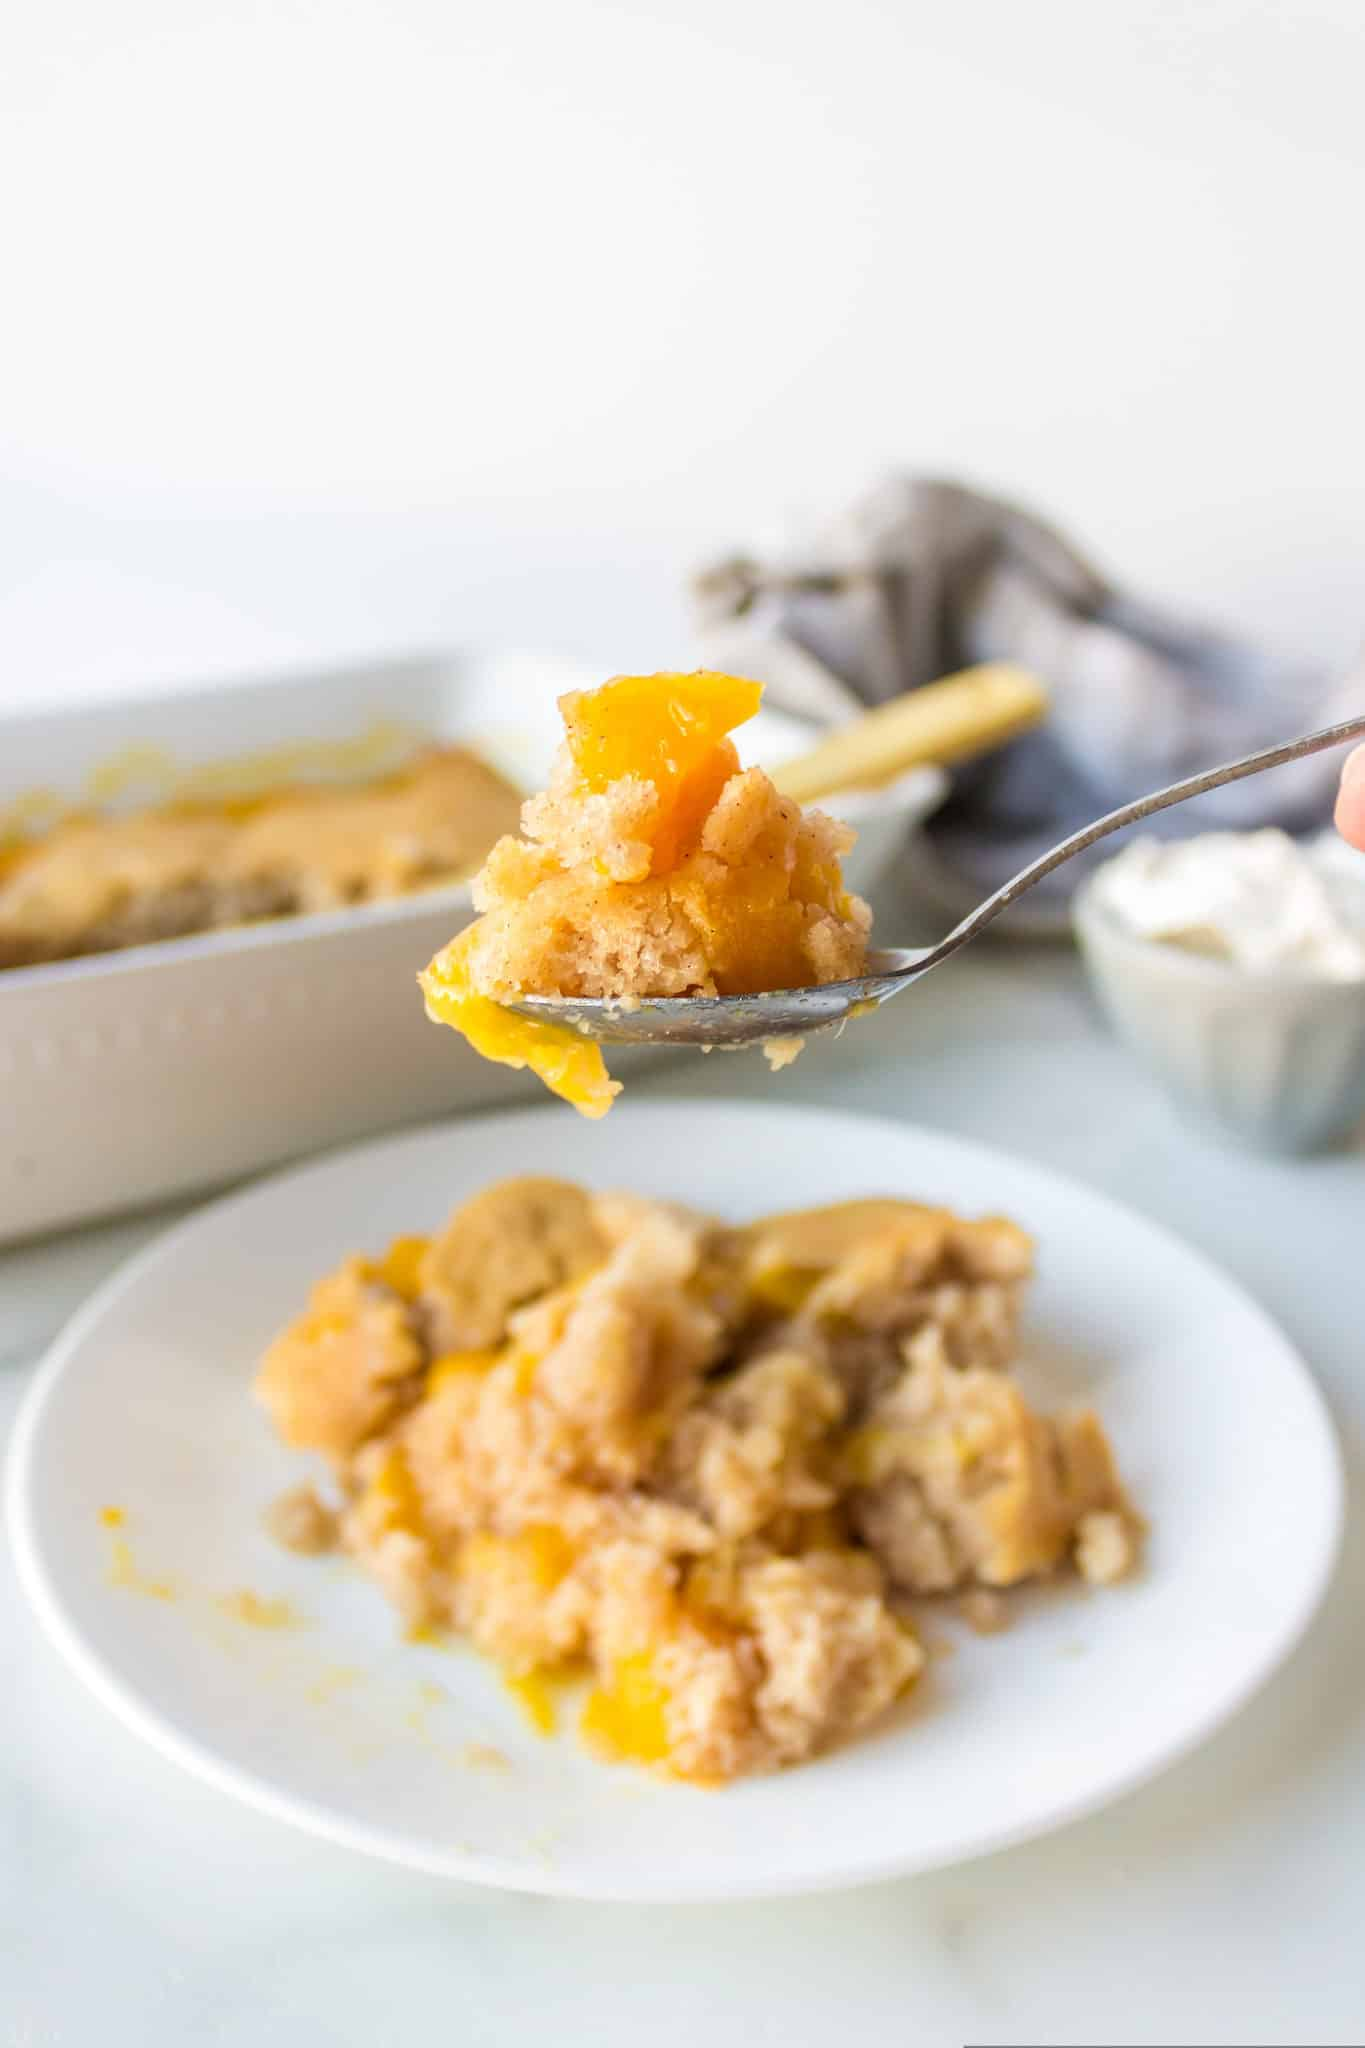 spoonful of peach cobbler ready to eat